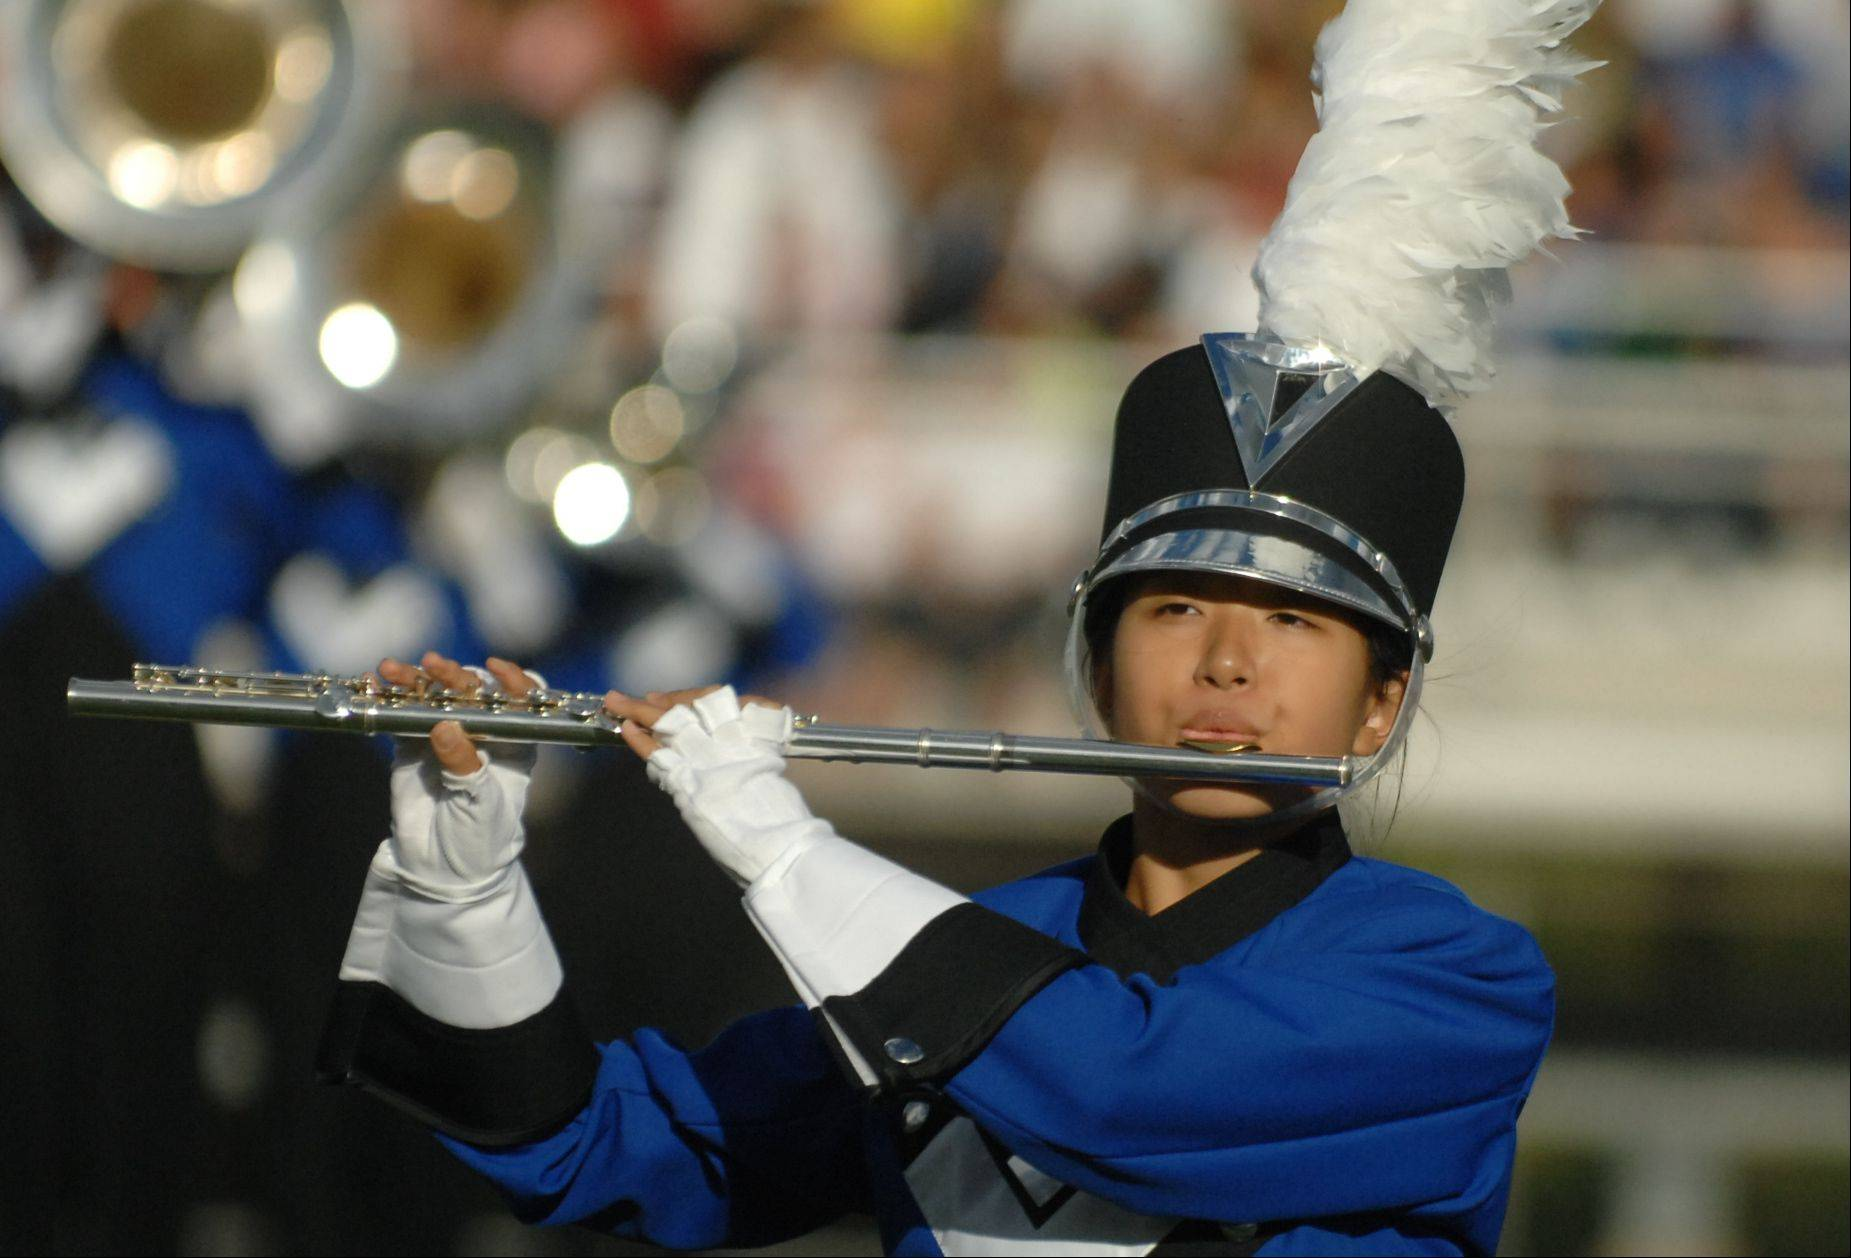 Twenty-four marching bands from throughout Illinois and the Midwest will perform Sept. 14 at the 35th annual Lake Park Lancer Joust in Roselle.